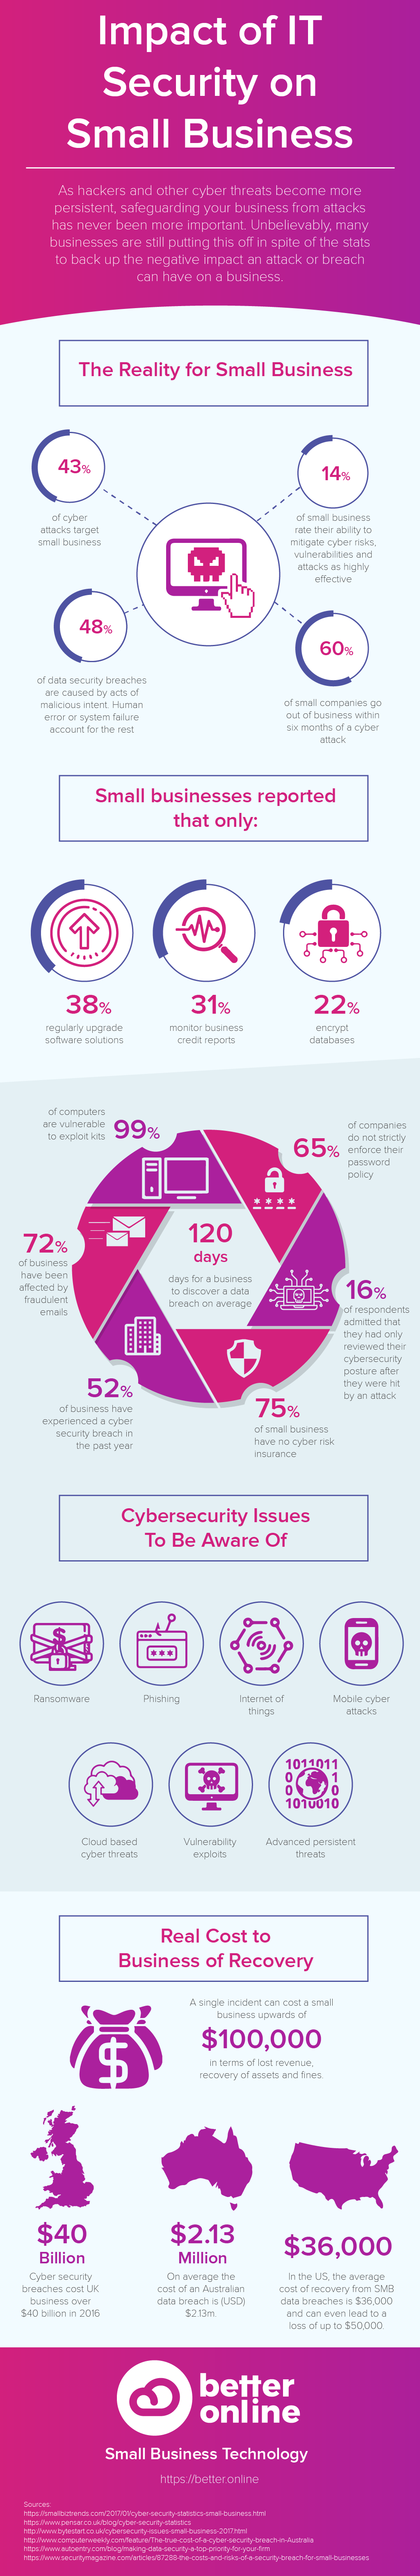 impact-it-security-small-business-infographic